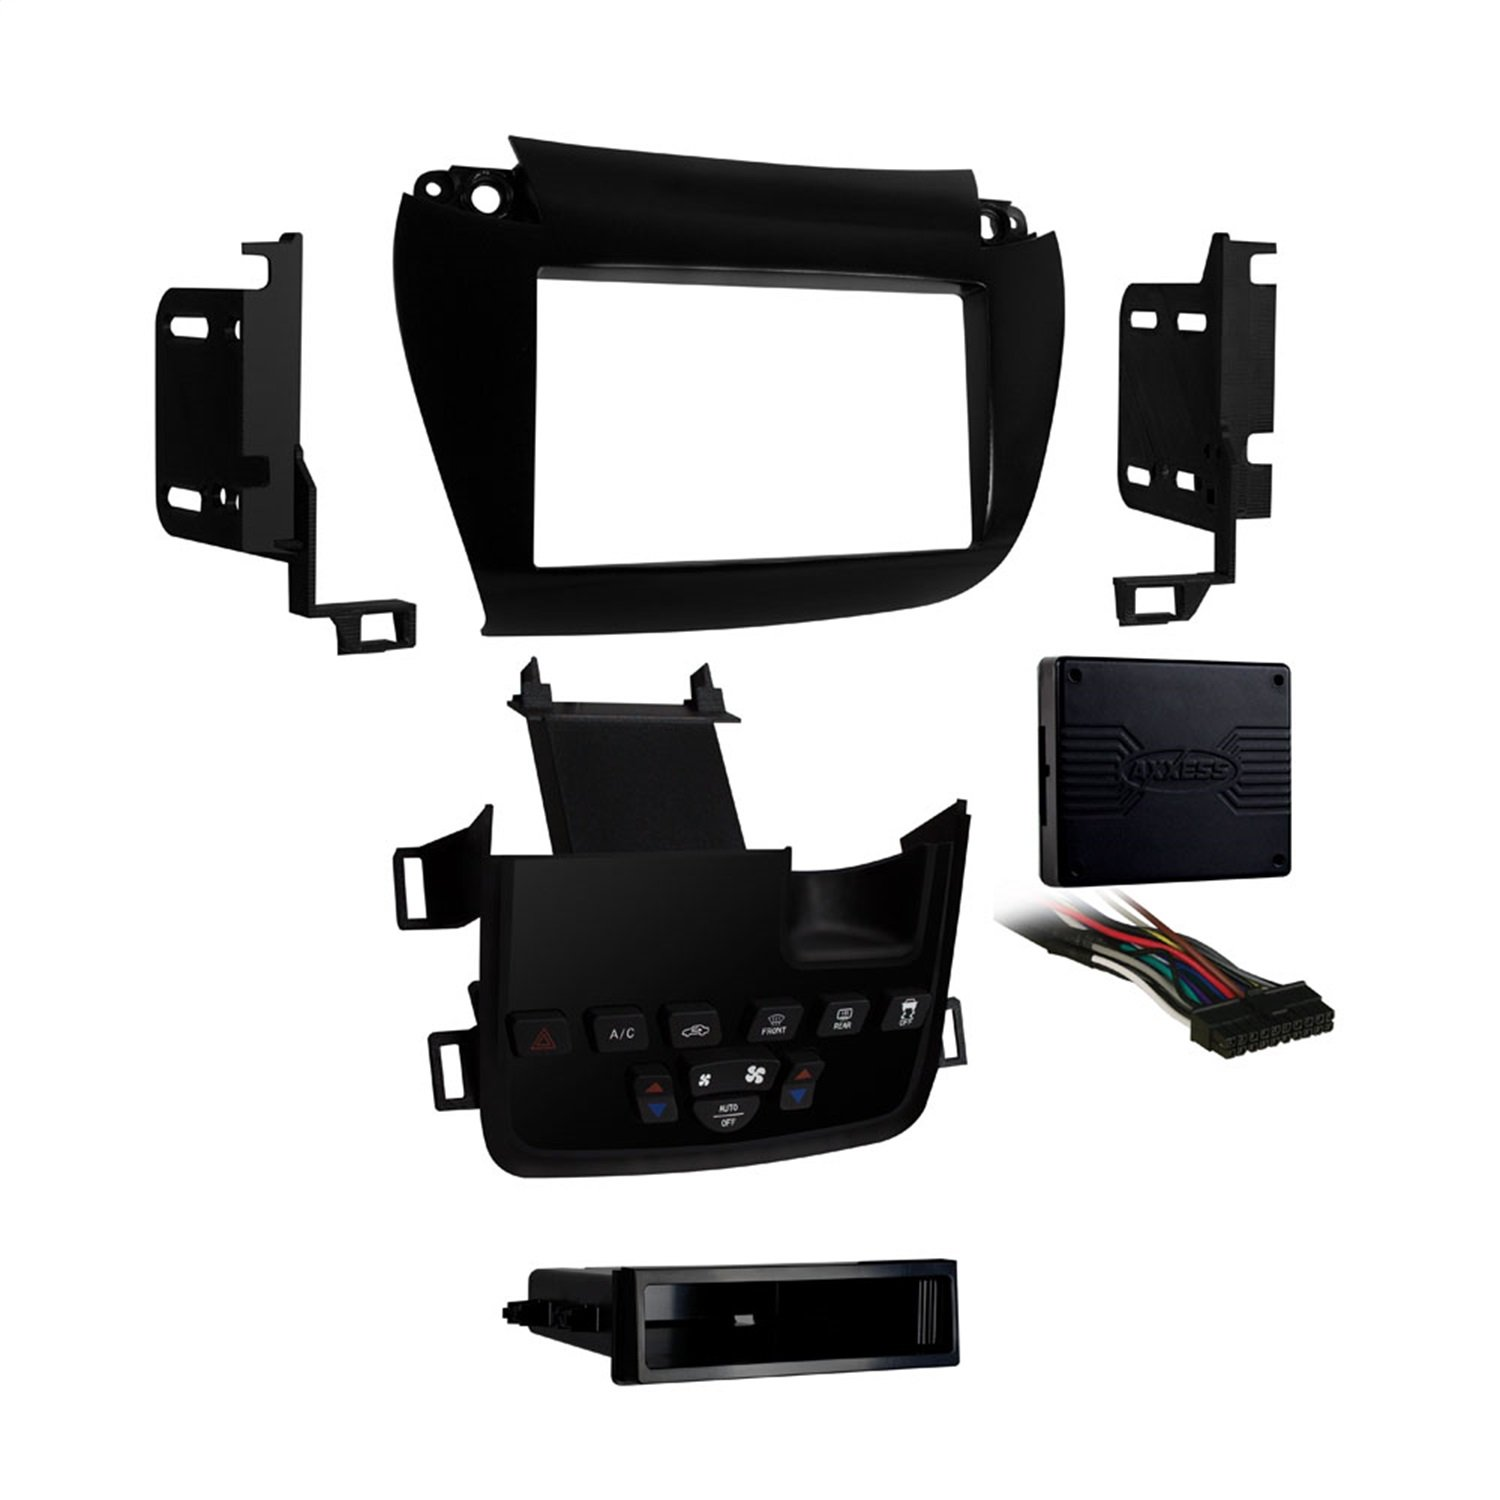 Metra 99-6520B 2011-Up Dodge Journey Dash Kit with Factory 4.3-Inch Screen Retention (Matte black)